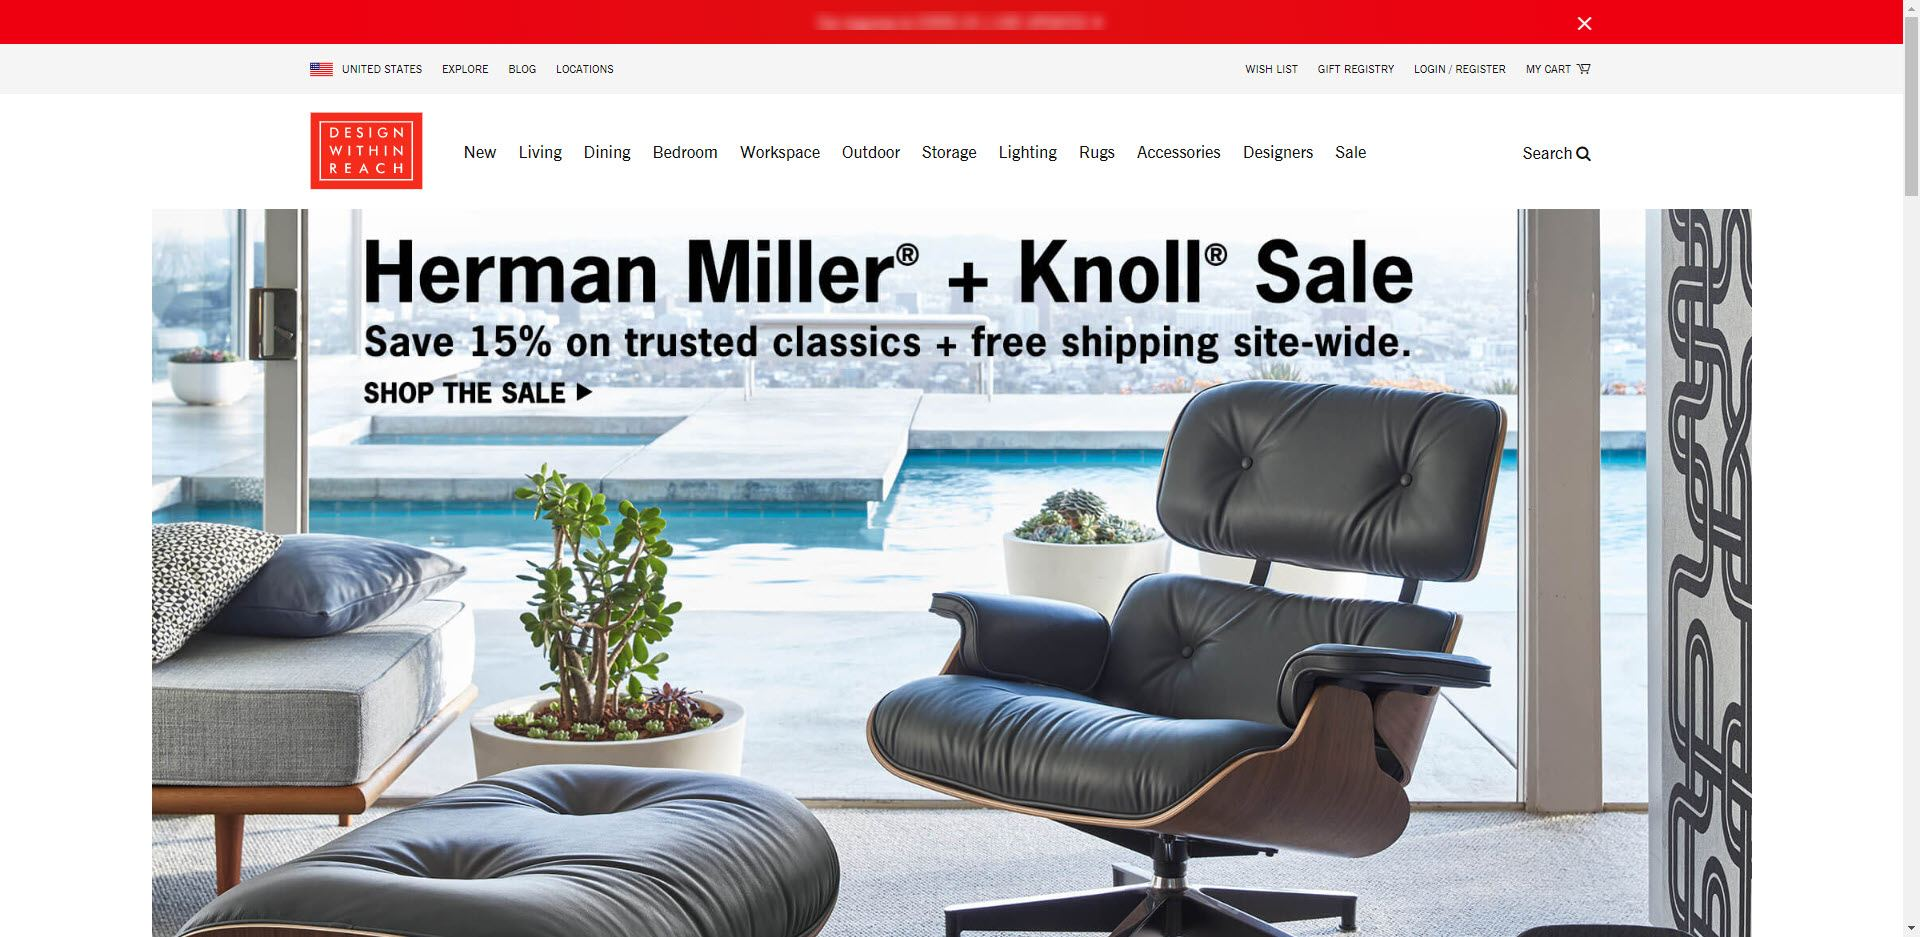 furniture affiliate programs - Design Within Reach Home